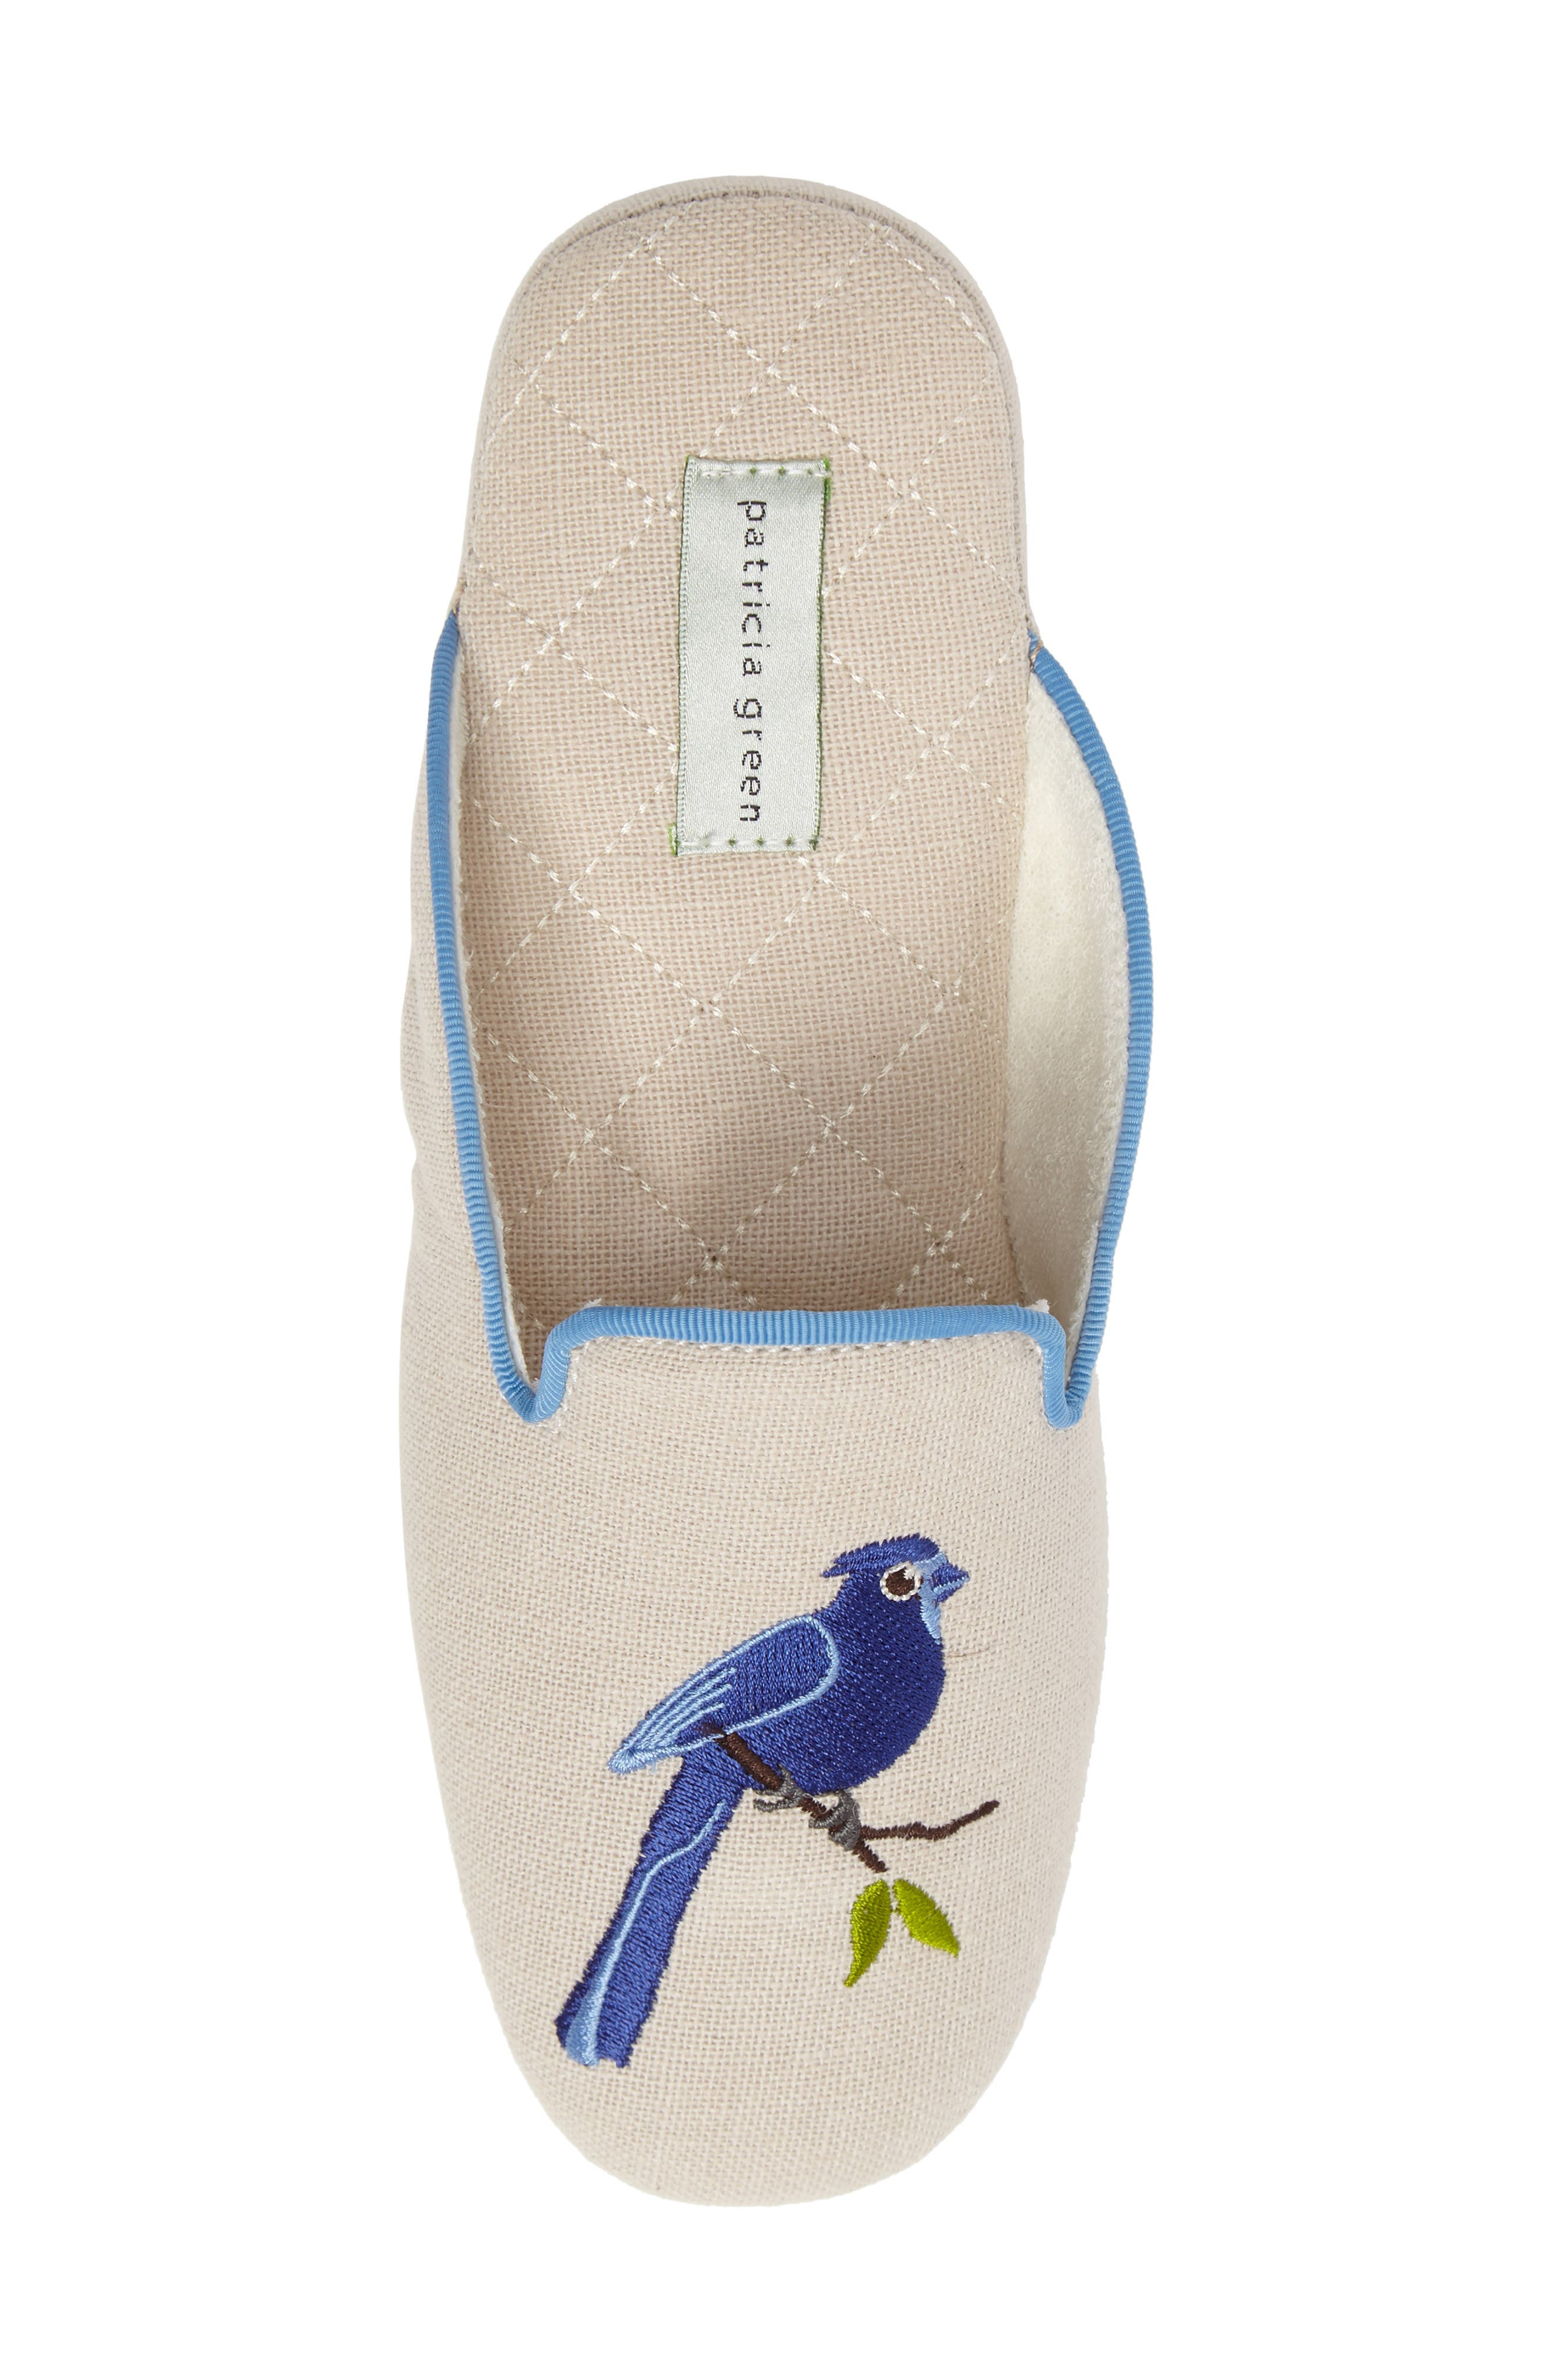 Bluebird Embroidered Slipper,                             Alternate thumbnail 5, color,                             Natural Fabric